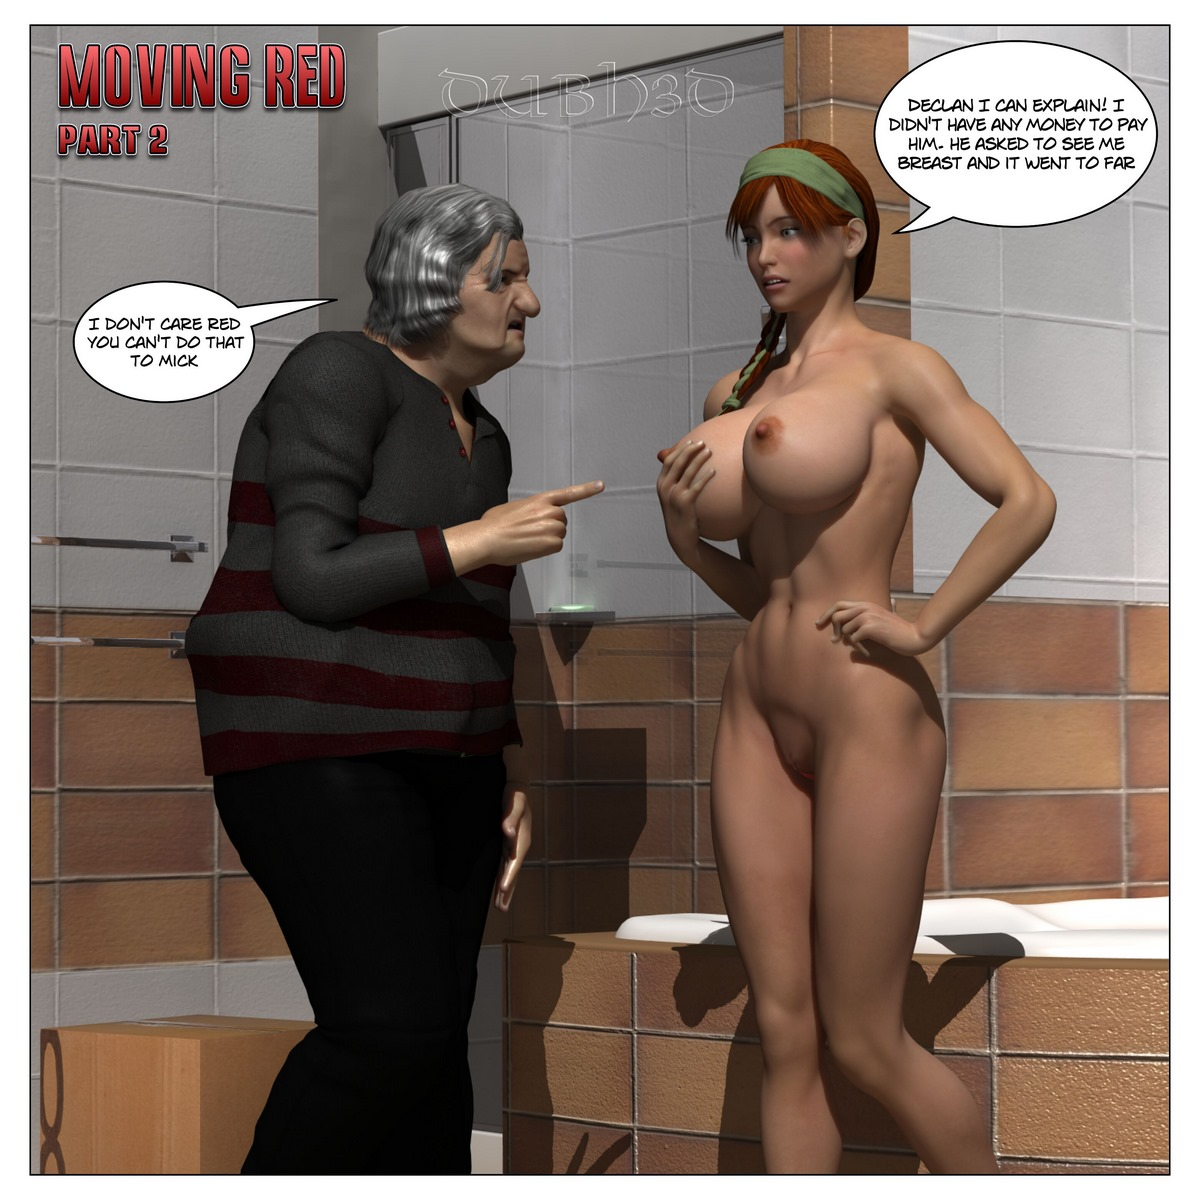 Porn Comics - Dubh3d – Moving Red Issue 2 porn comics 8 muses